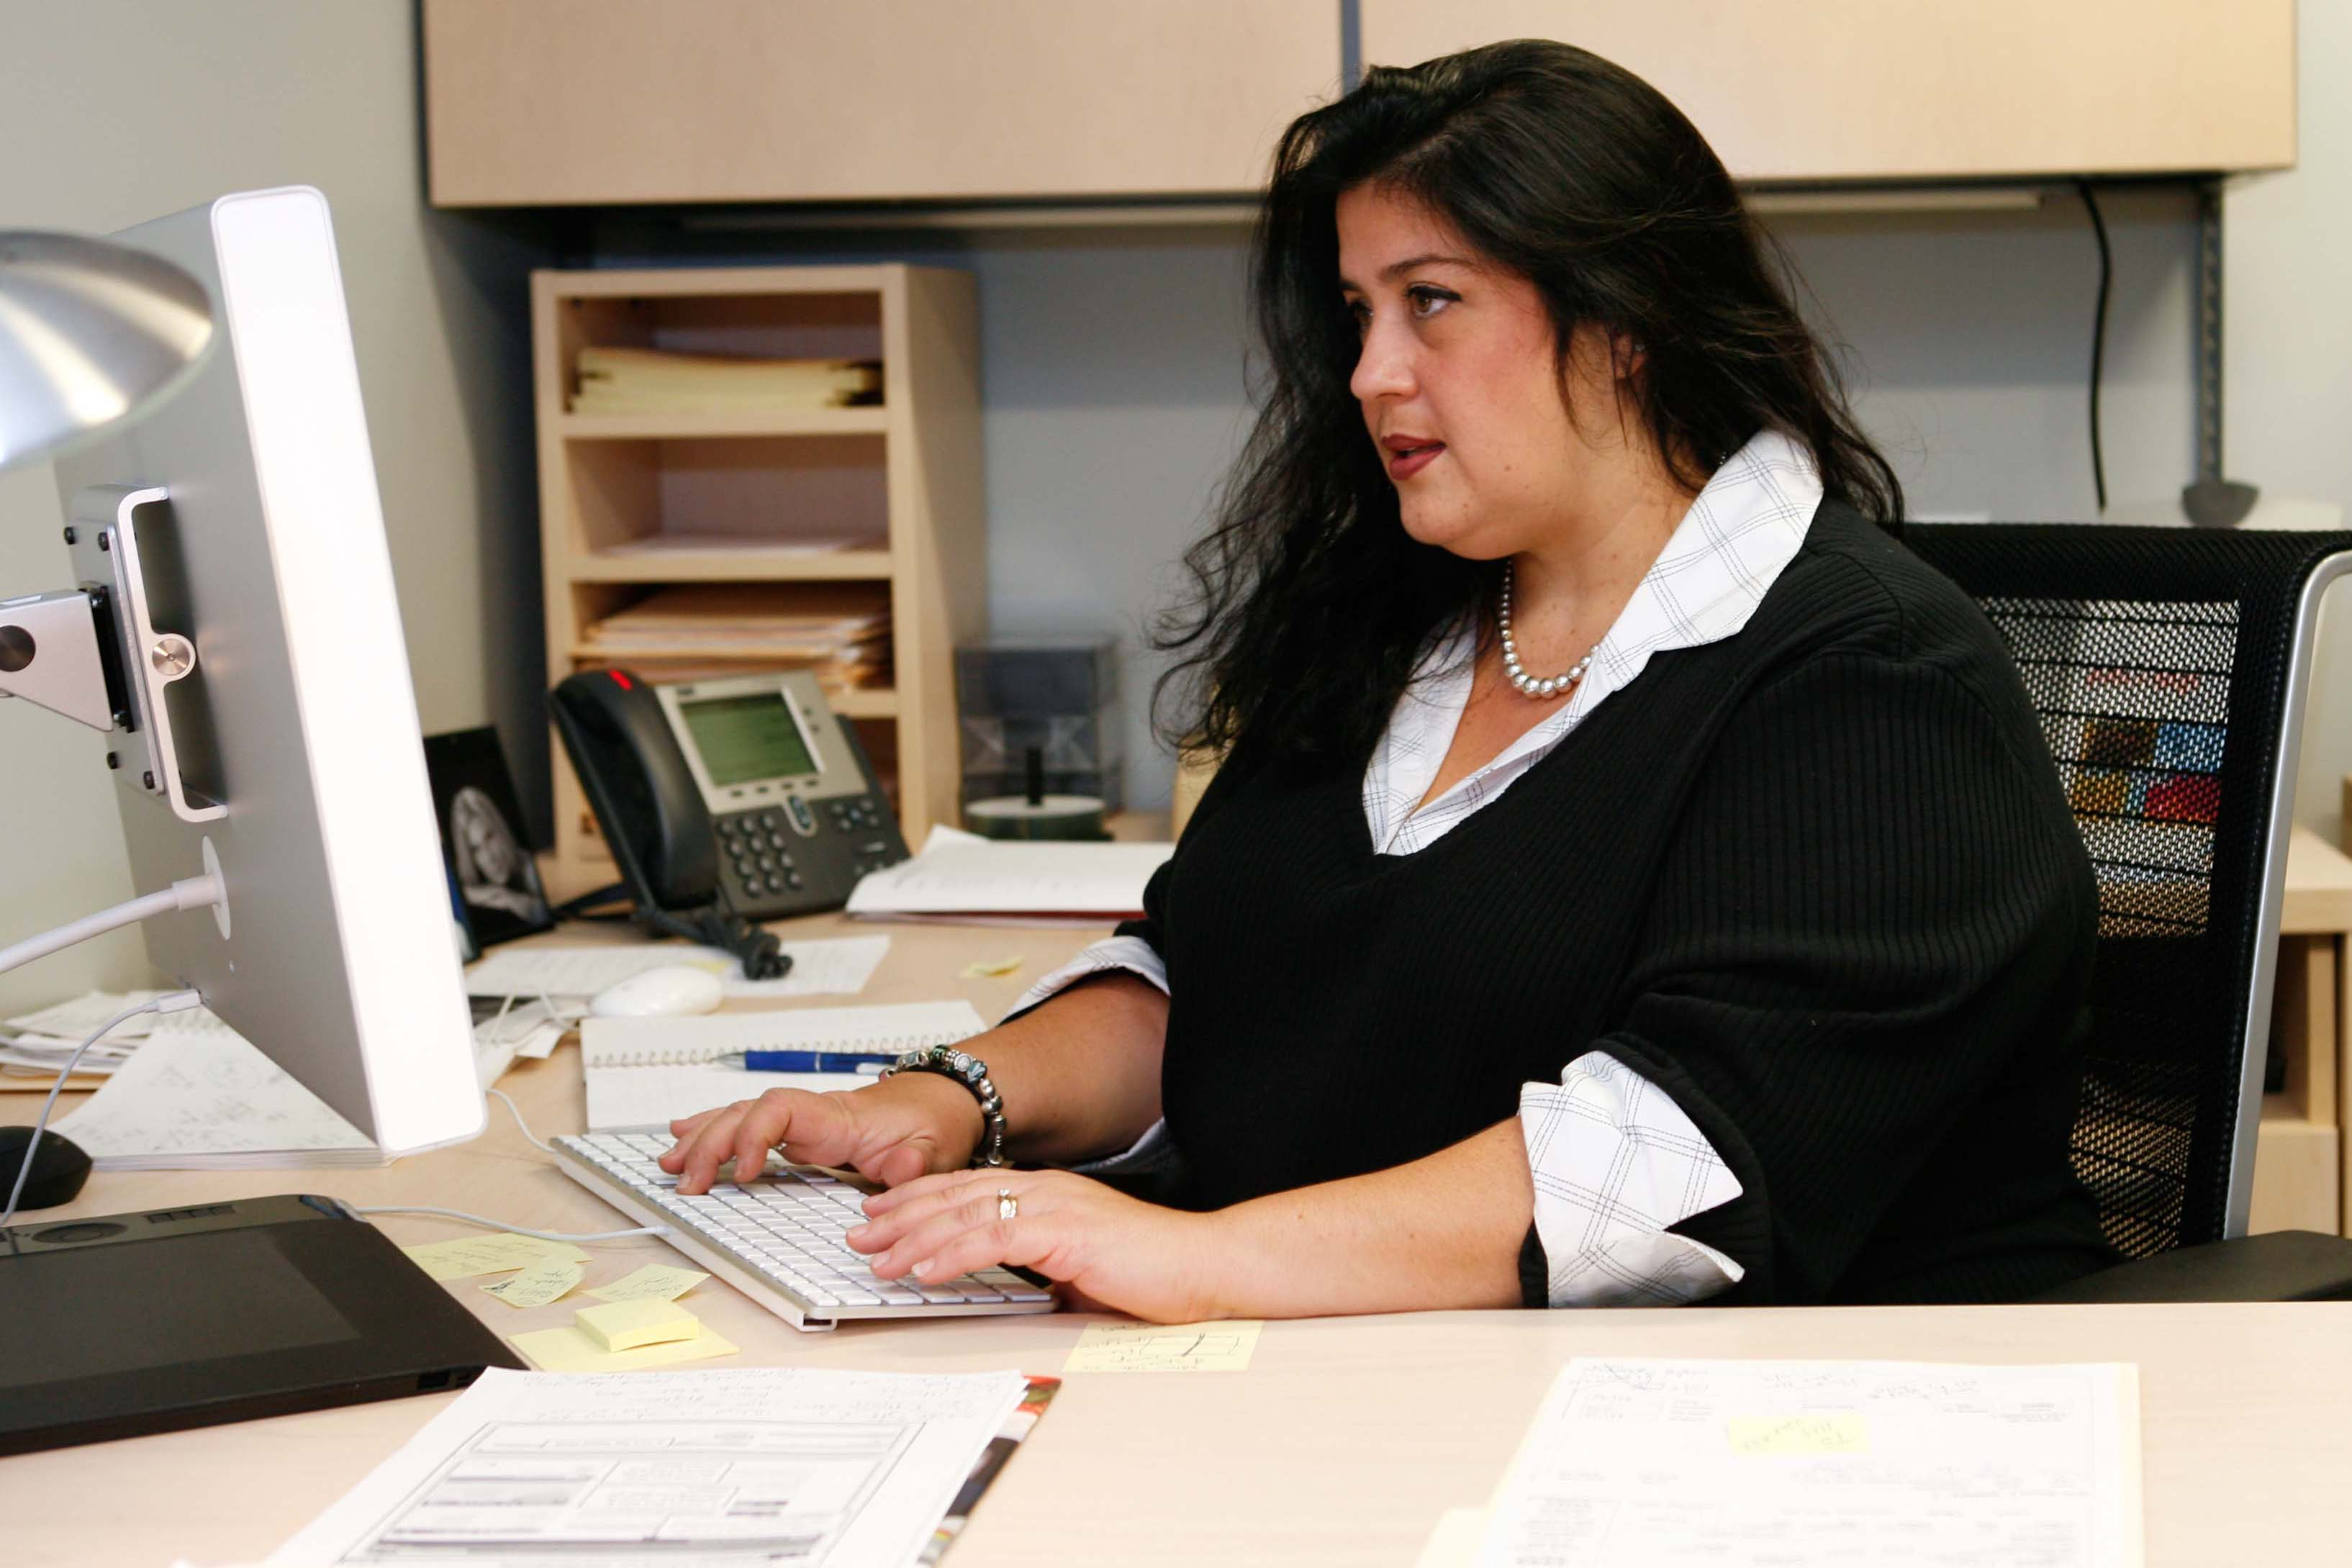 An overweight woman in an office. (Rudd Center Photo)